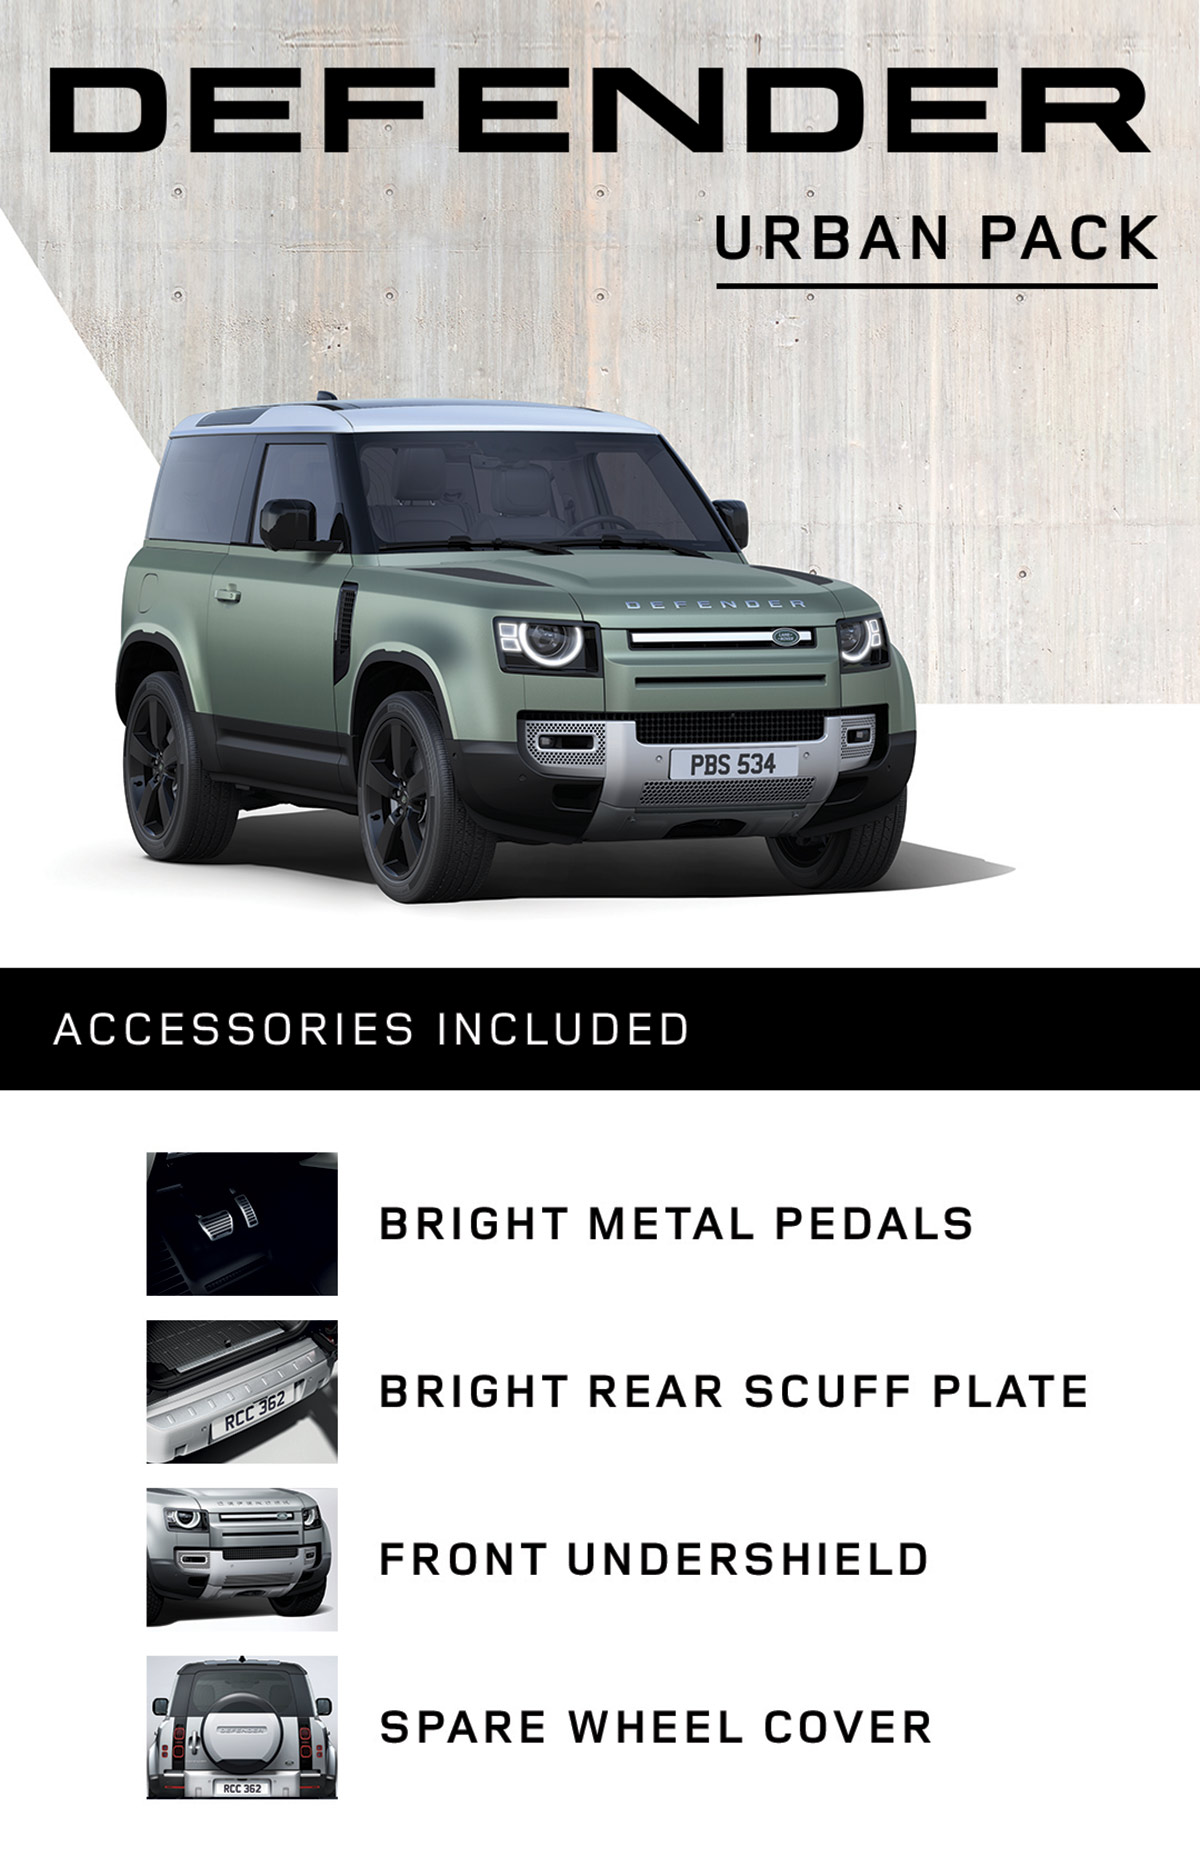 2021 Land Rover Defender 90, 110: Specs, Prices, Features